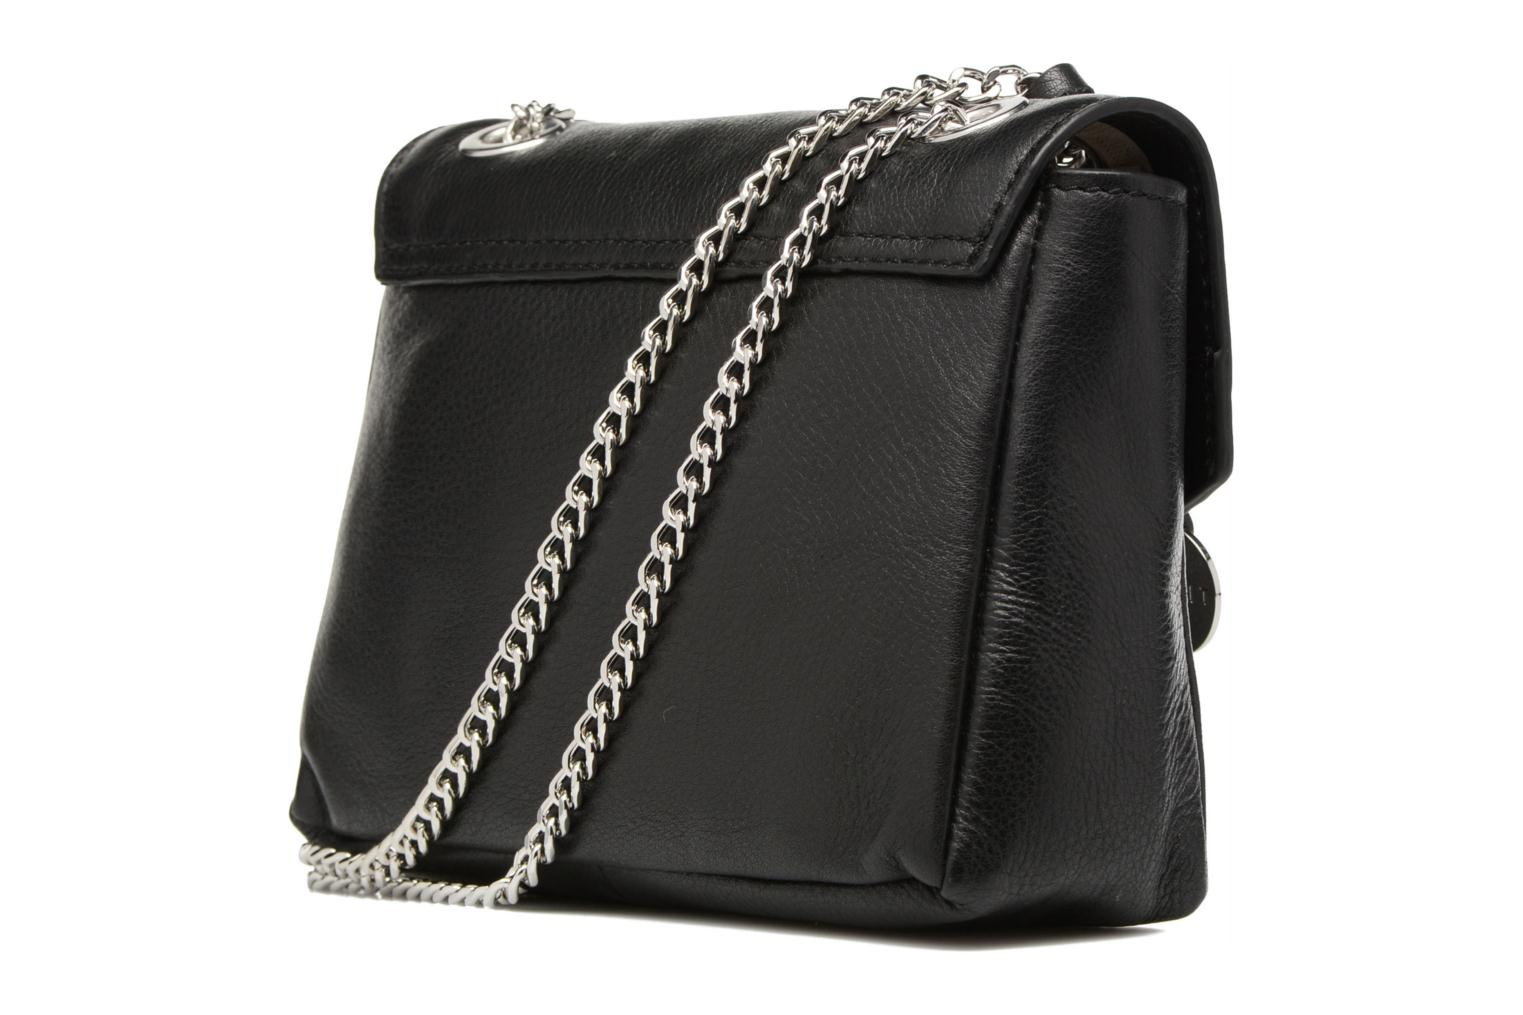 Chain leather Black